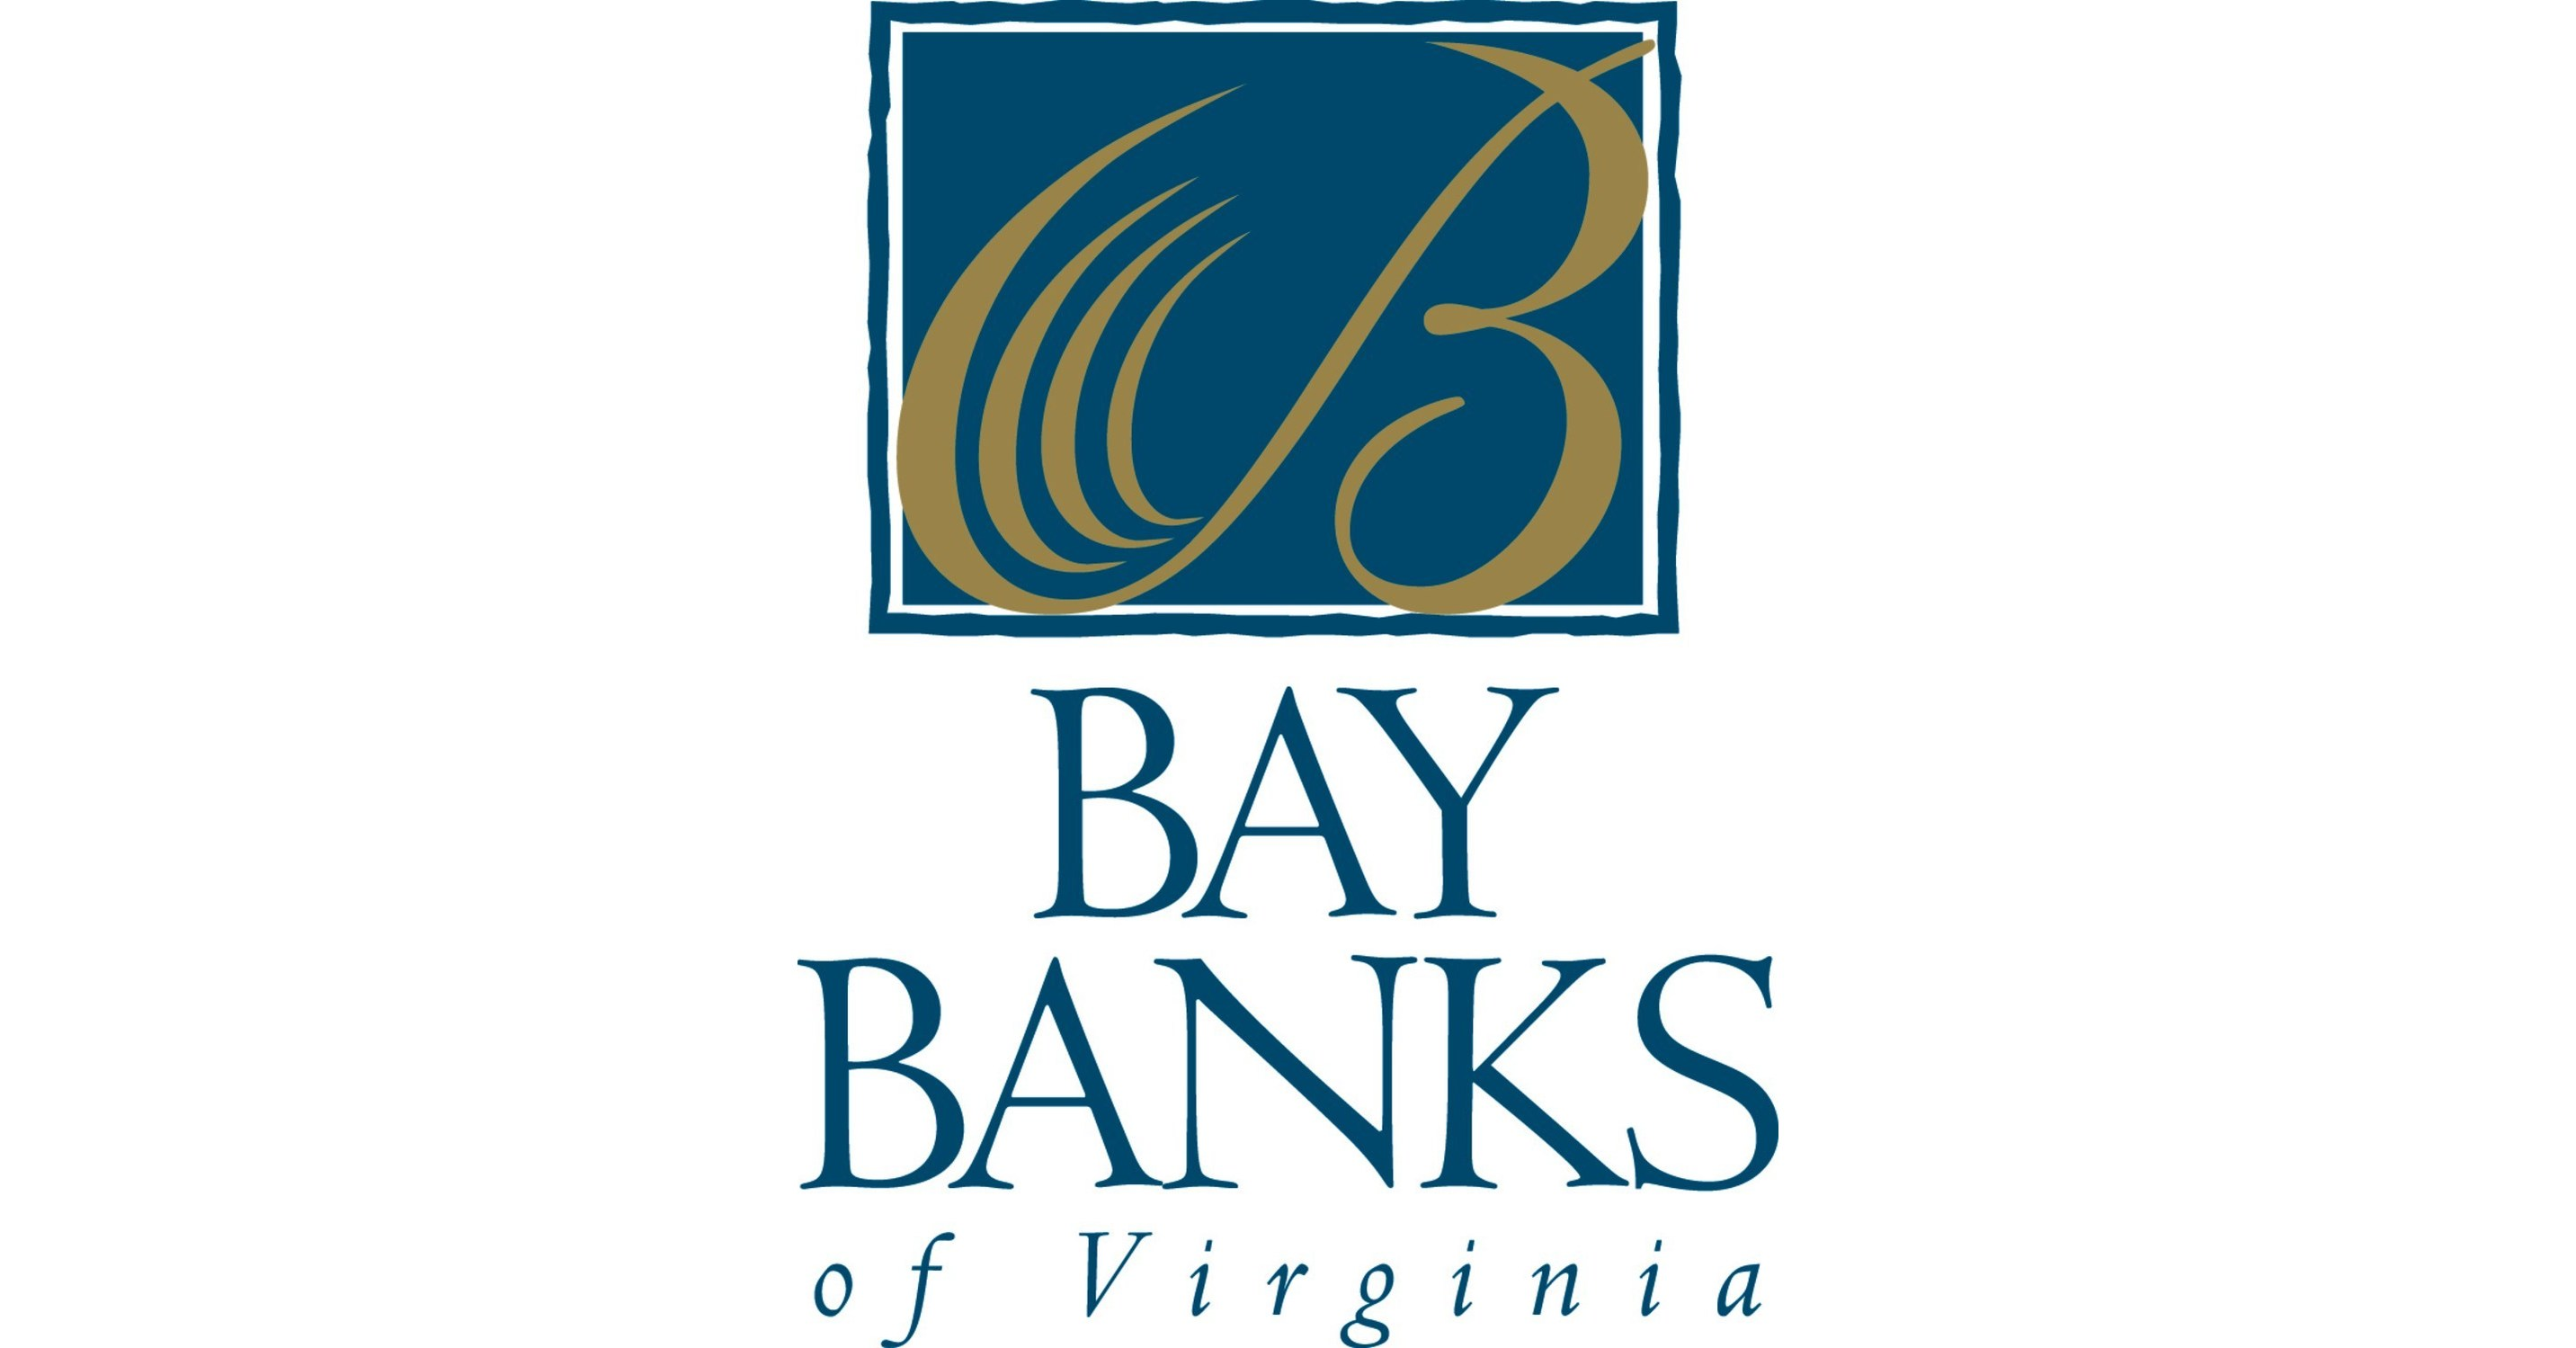 Bay Banks of Virginia, Inc. Reports Second Quarter and First Half 2018 Results